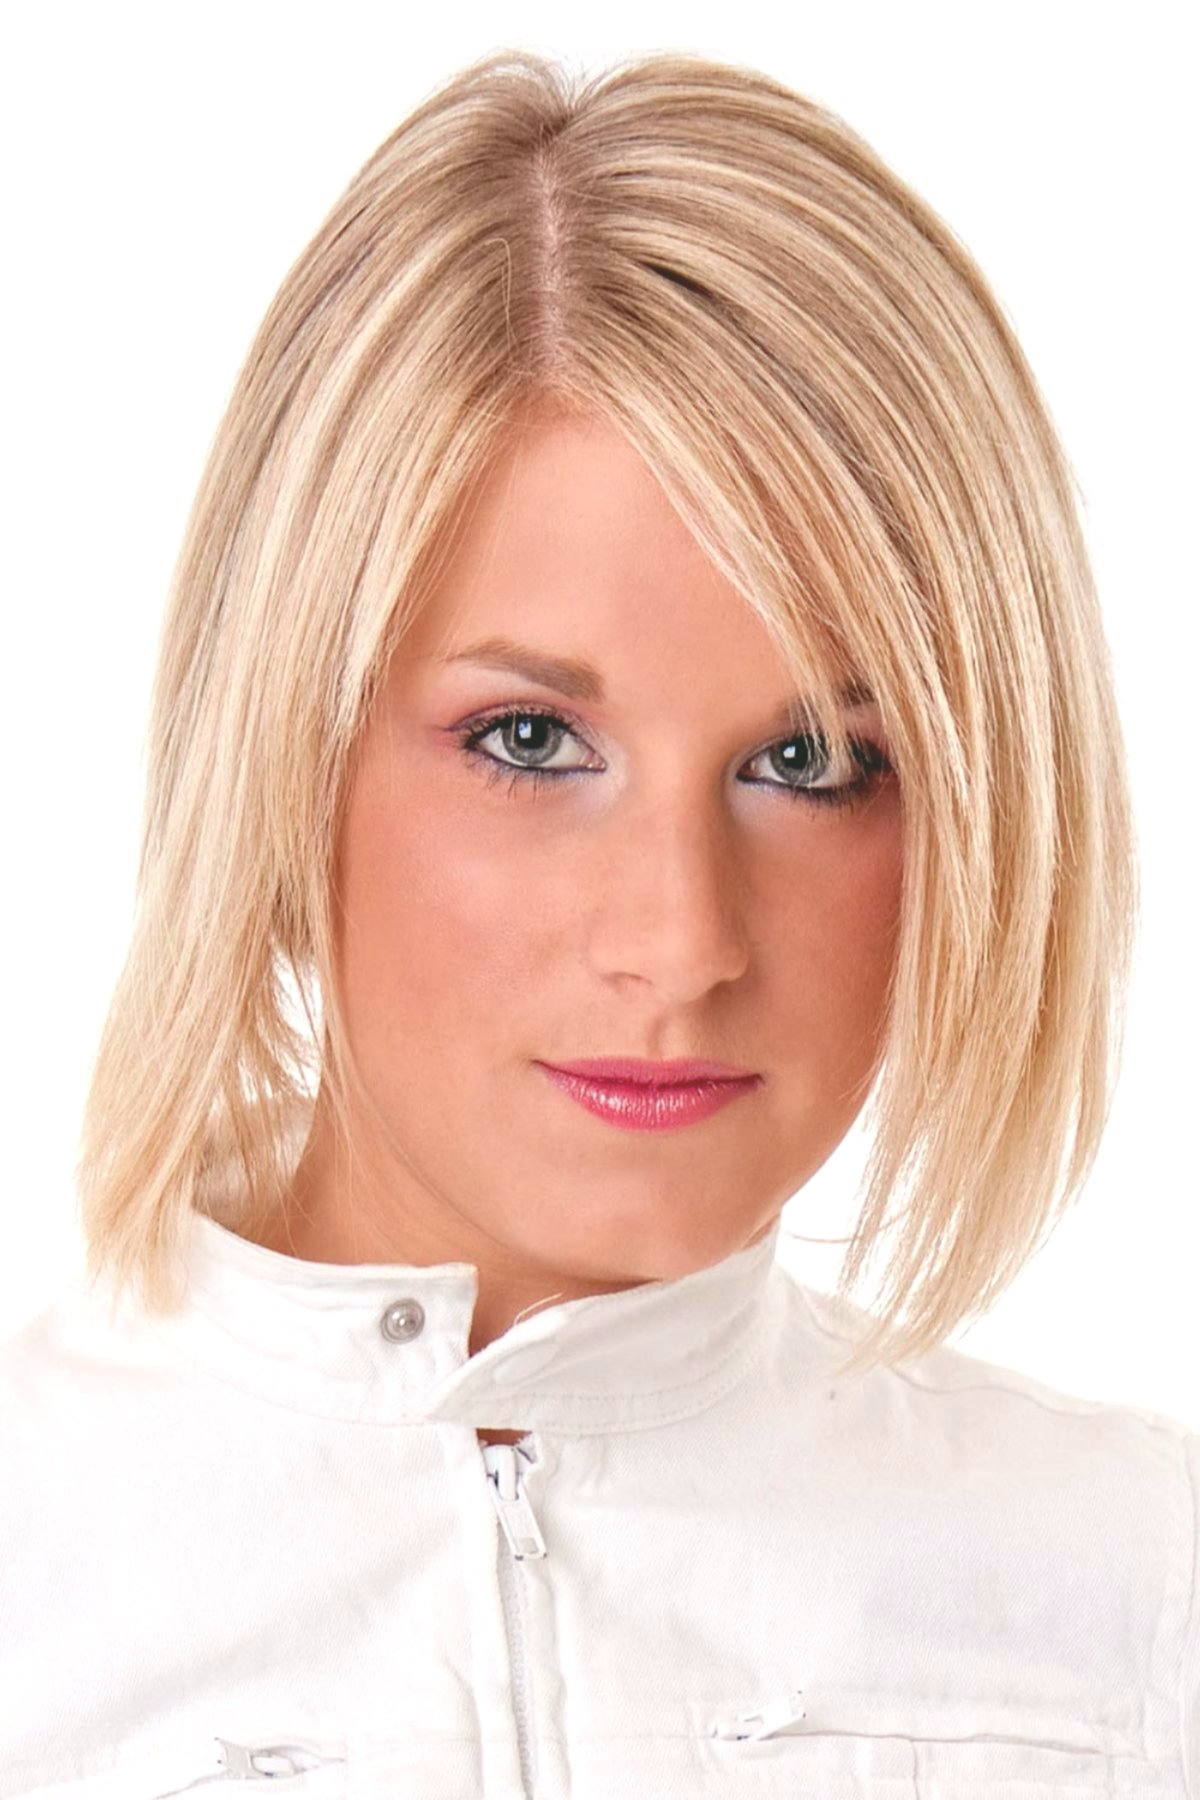 Contemporary Bob Hair Gallery - Fantastic Bob Hair Collection